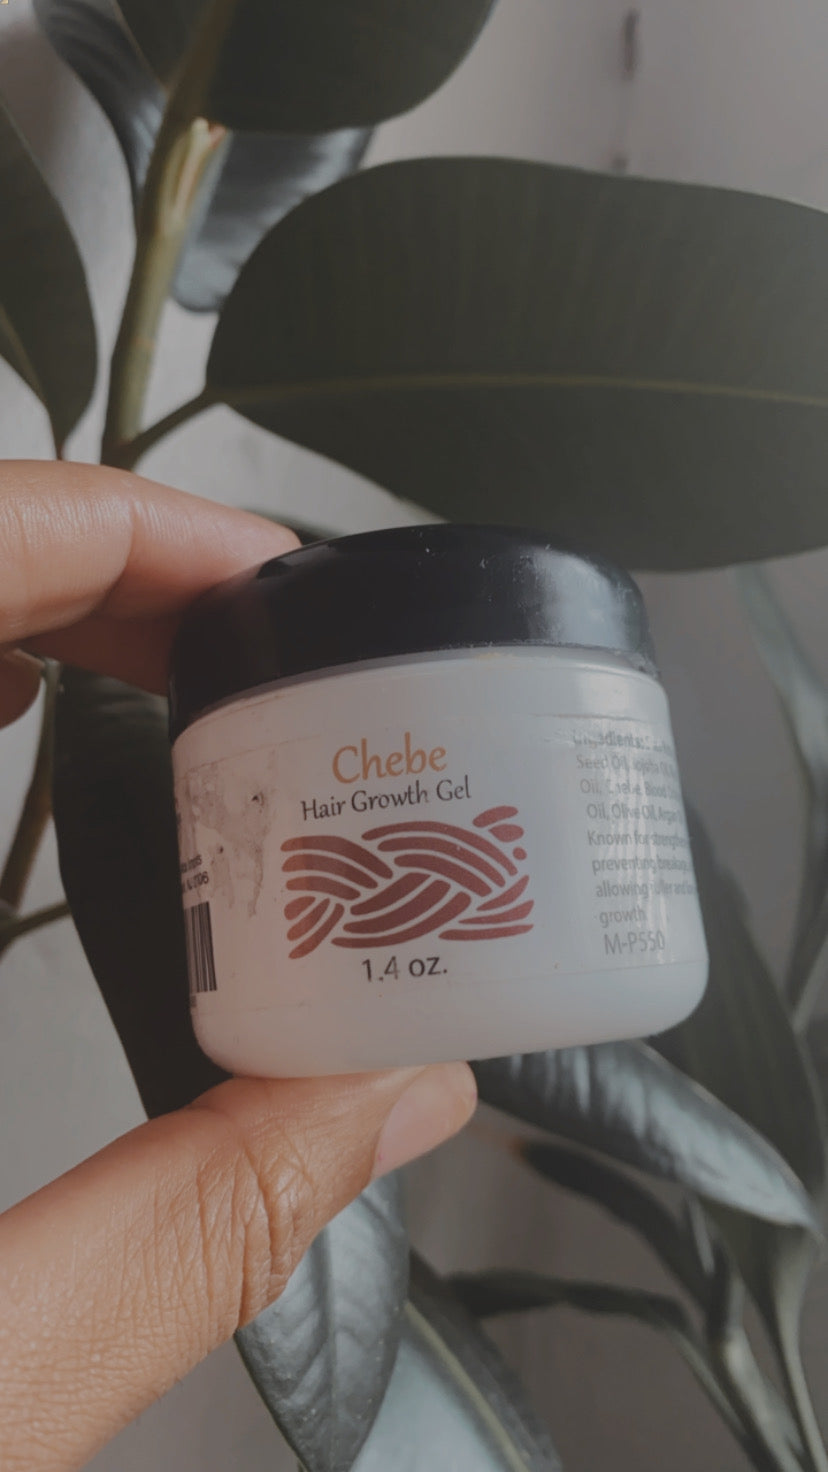 Chebe Hair Growth Butter (1.4oz) *misprinted labels*